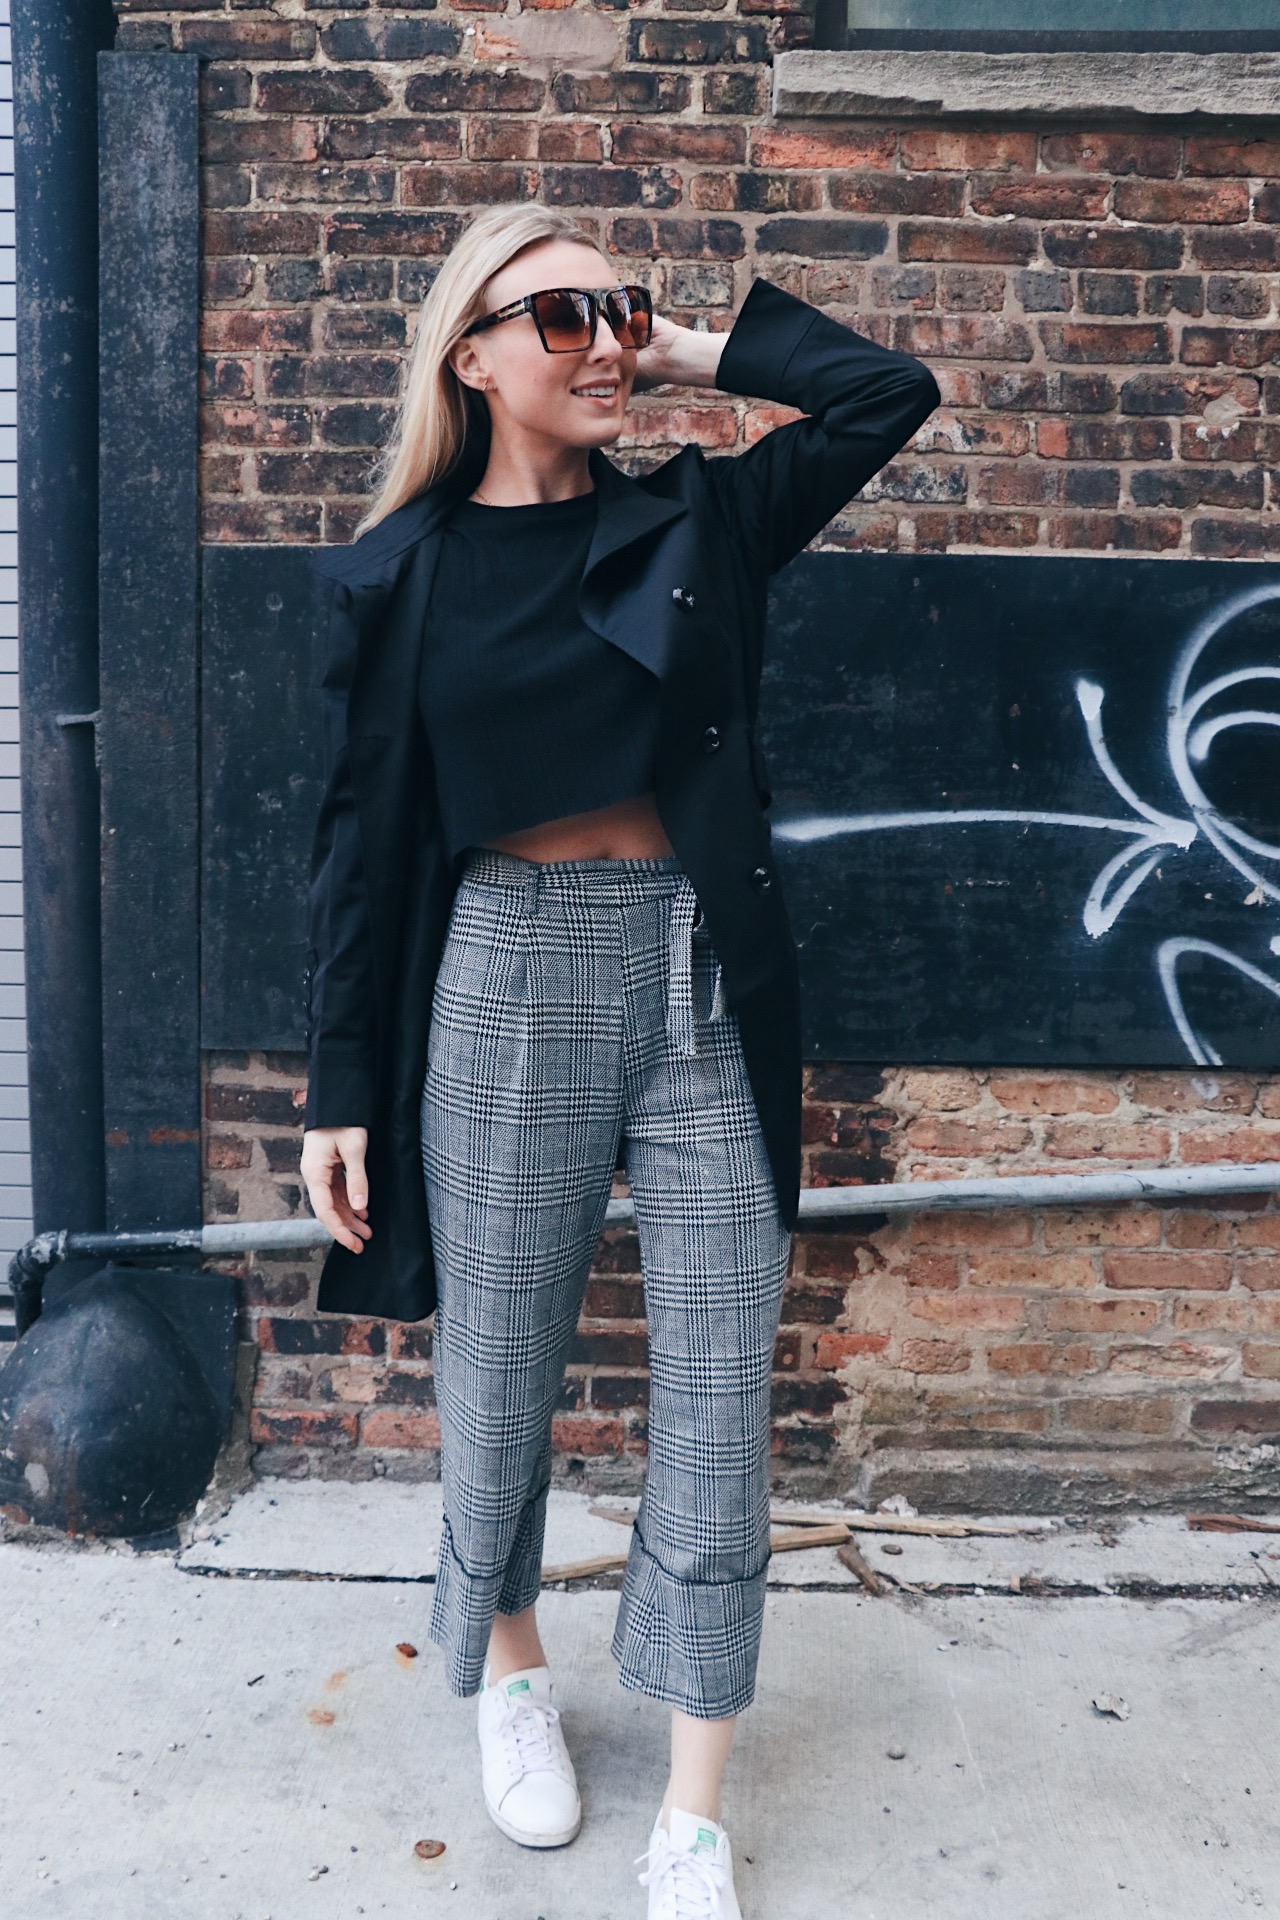 84036805 Pants are from Nasty Gal and on sale for $20 | Adidas Stan Smith sneakers |  black crop top is old but similar shirt here | Sunglasses are Amazon and  only ...